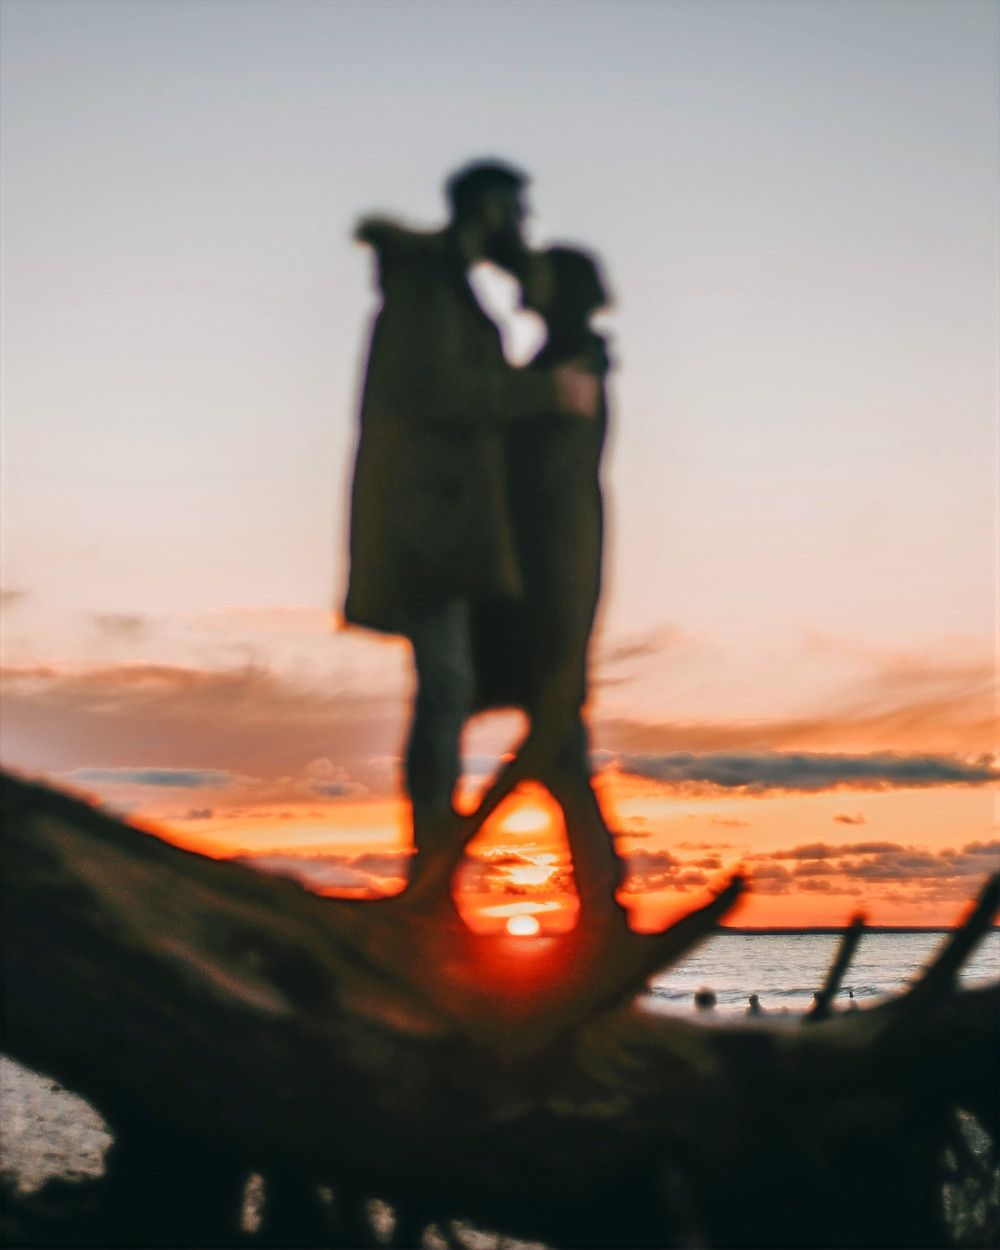 A couple embraces at sunset, displaying a sense of liminality and transition during a new phase of life.